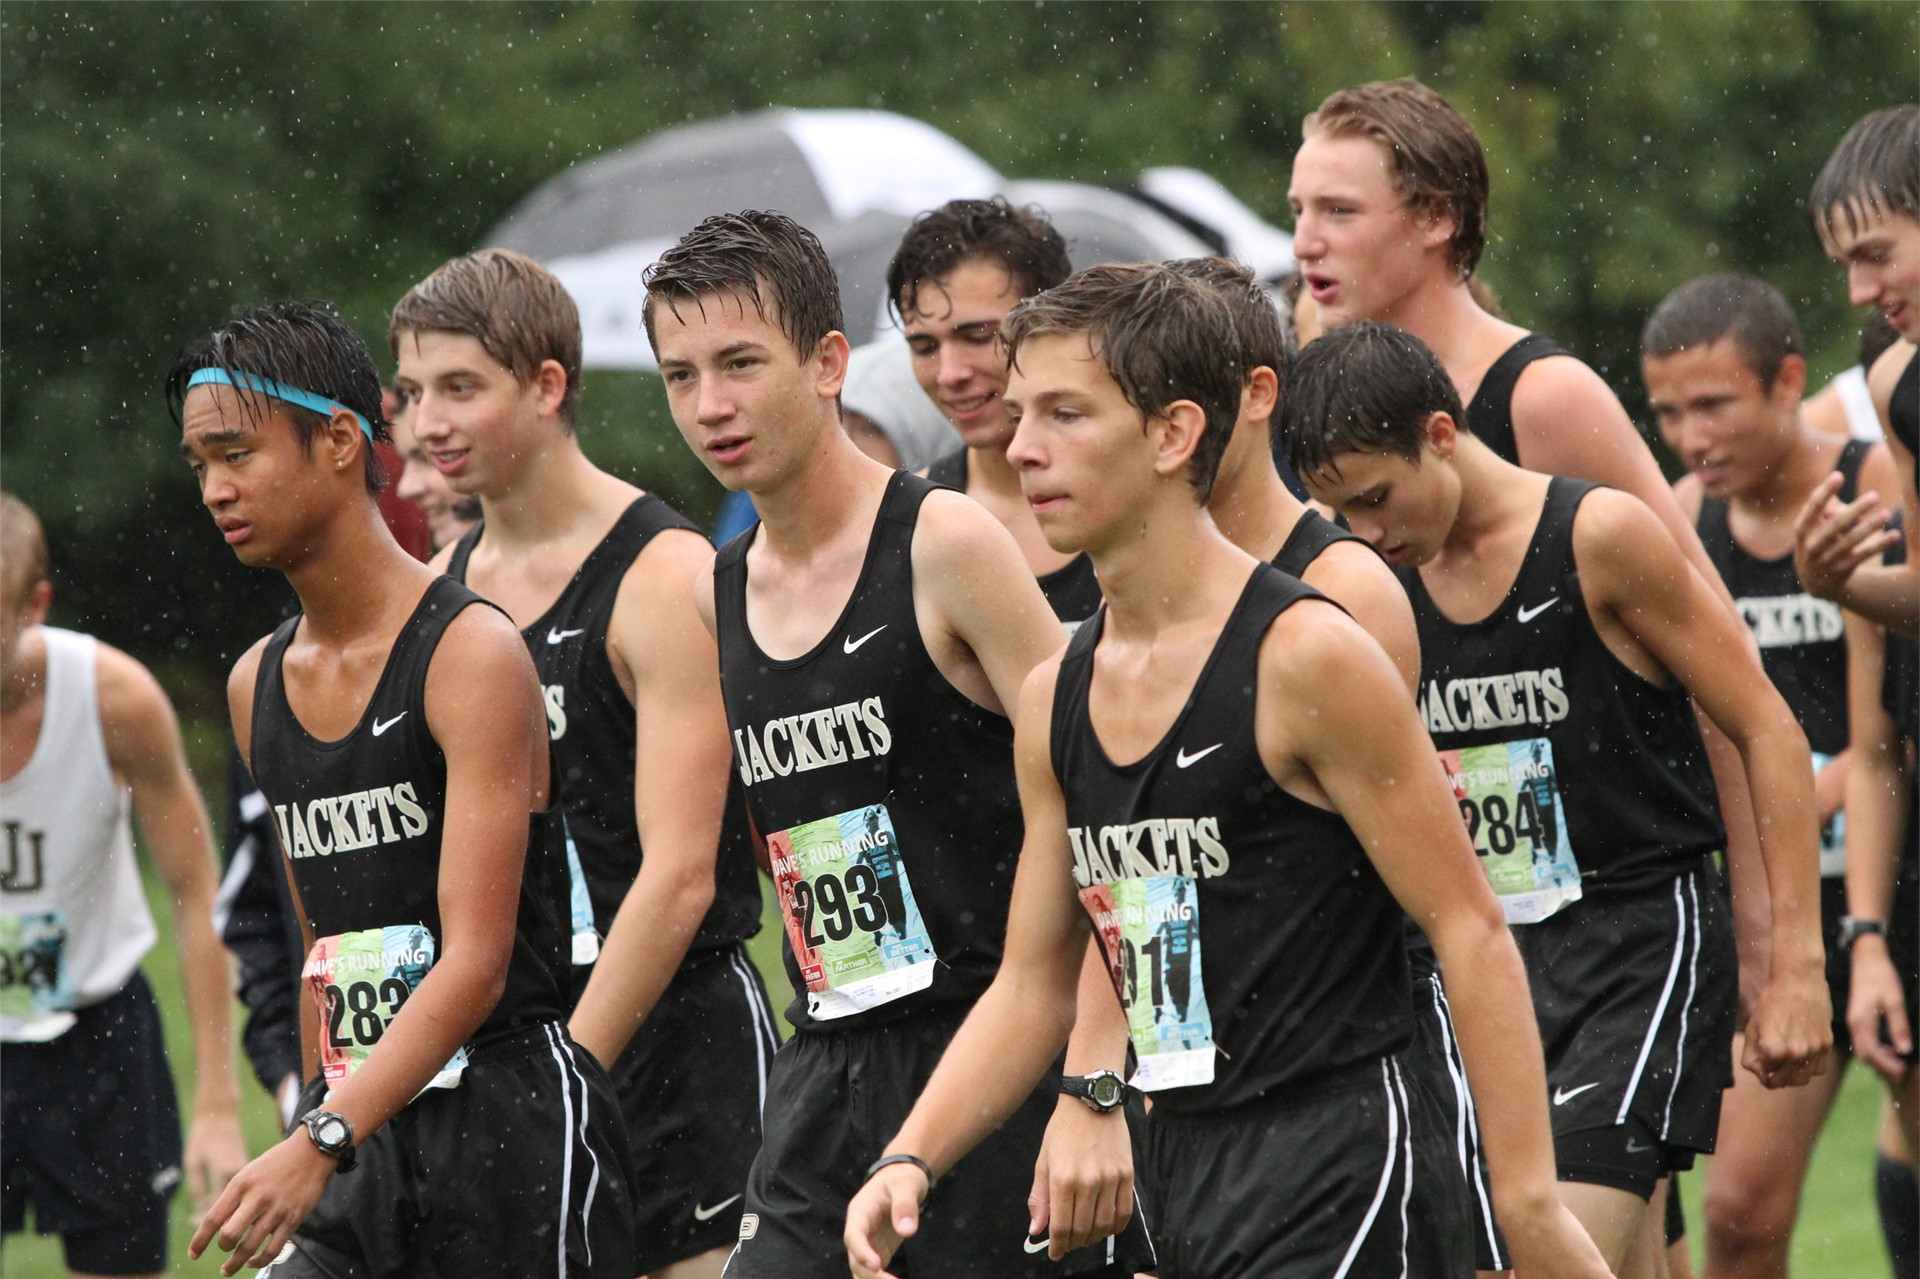 PHS student athletes preparing for a cross country meet